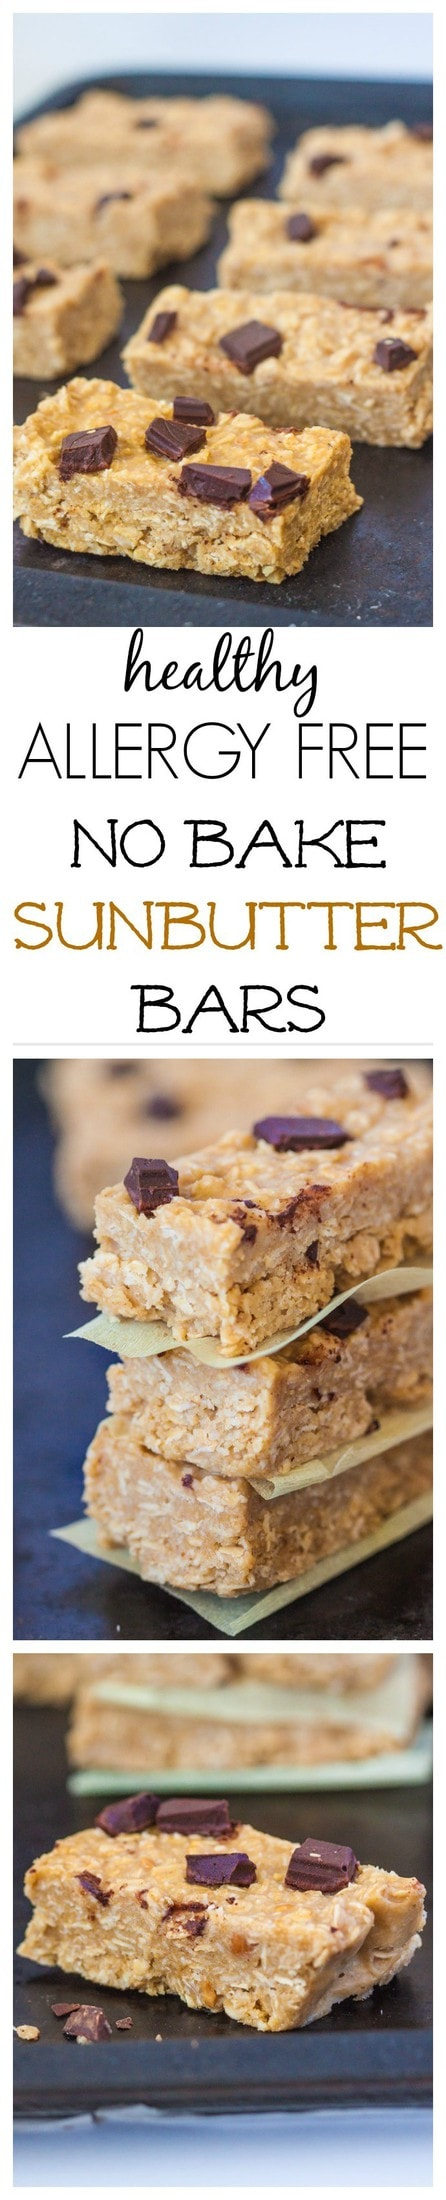 No Bake Sunbutter Bars- A delicious, allergy friendly granola bar which requires 1 bowl and 10 minutes to whip up! The perfect snack to tide you over between meals- Gluten free and vegan too. @thebigmansworld - thebigmansworld.com